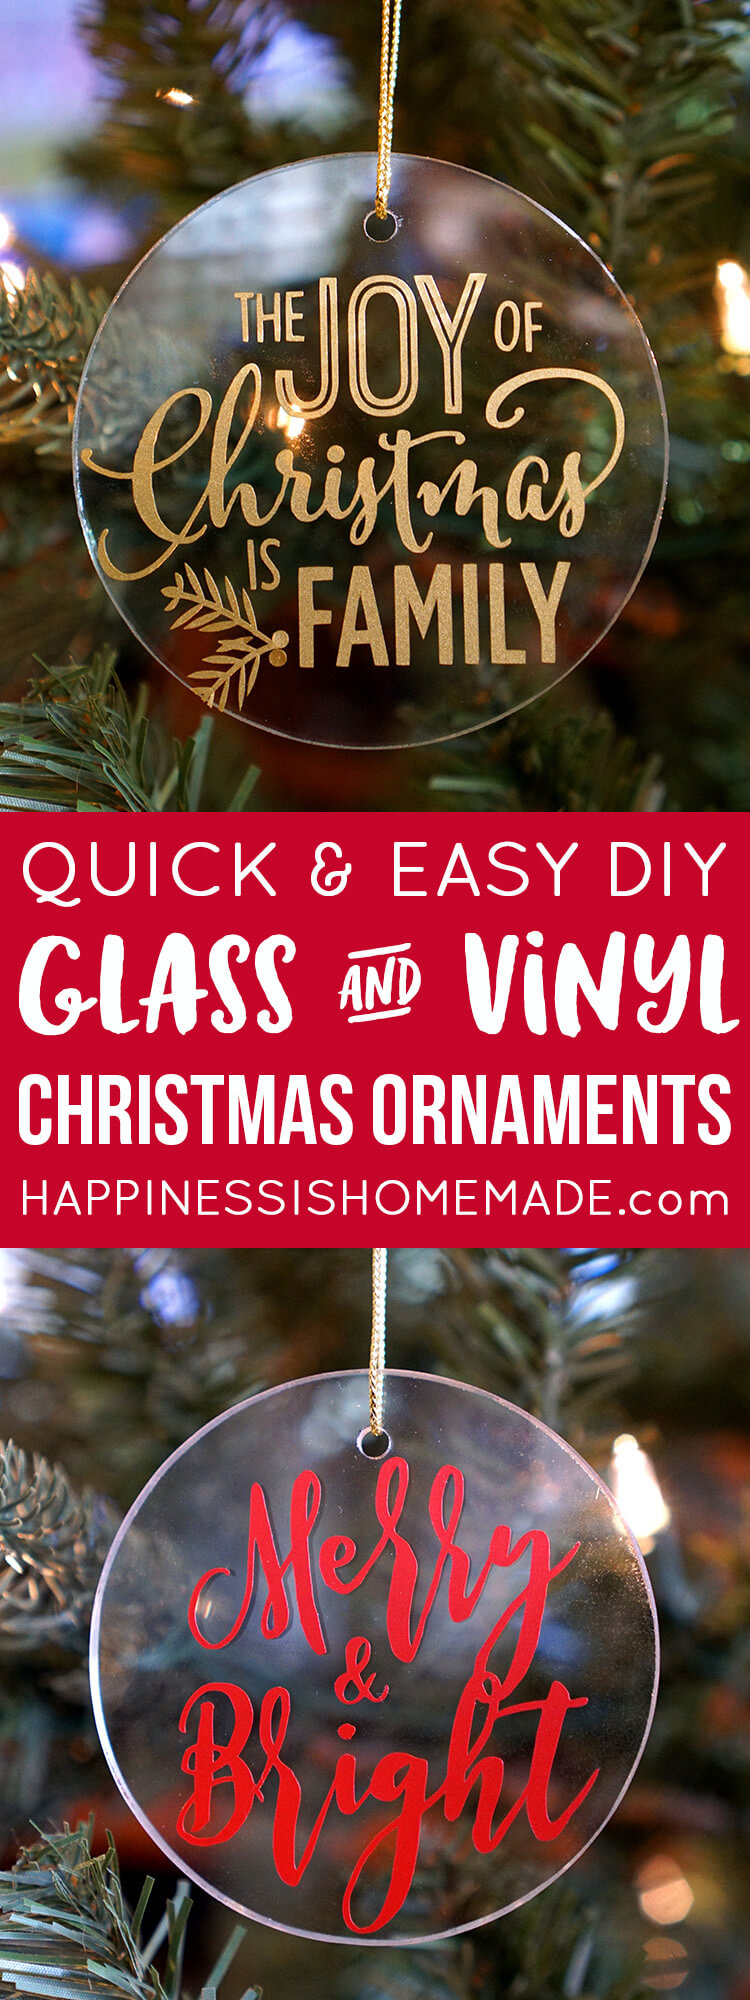 quick-and-easy-diy-glass-and-vinyl-christmas-ornaments